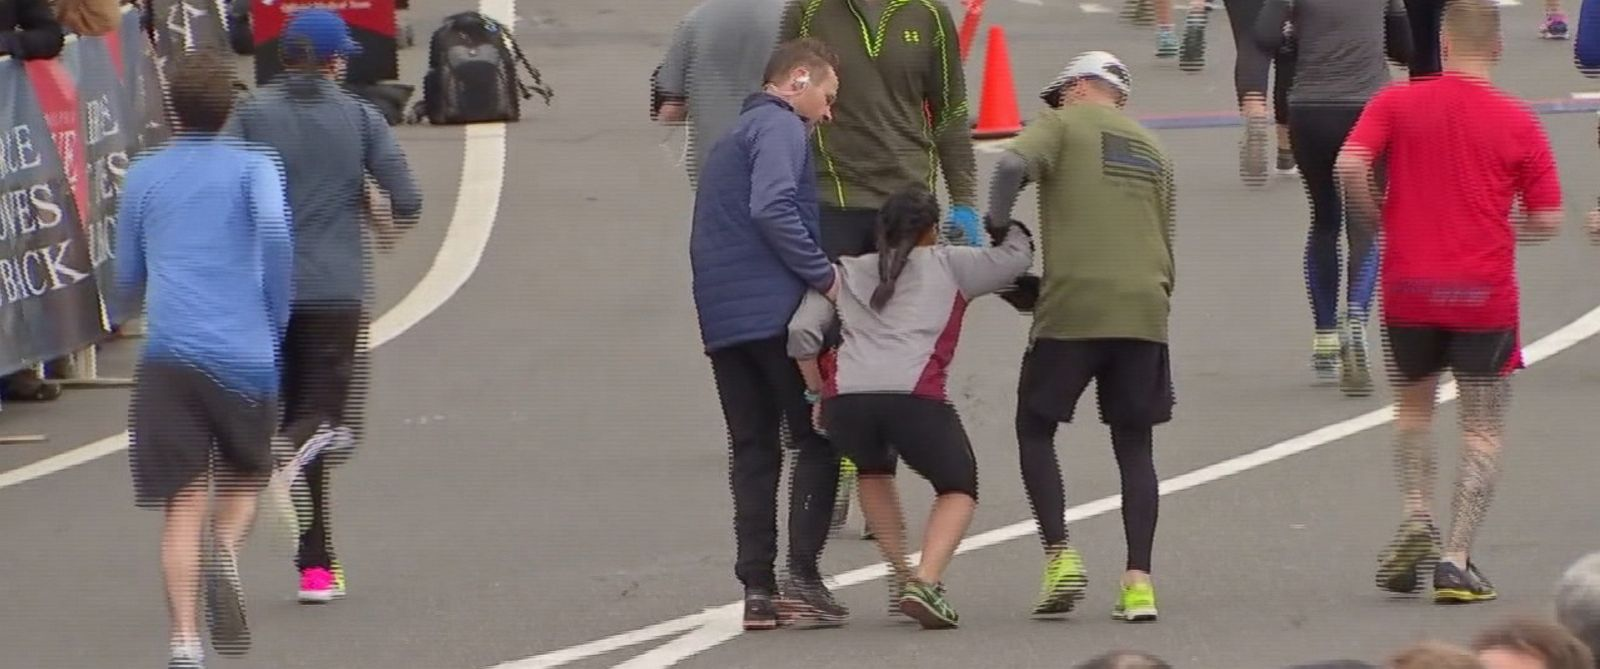 VIDEO: Two runners stopped to help the woman in the Philadelphia Love Run Half Marathon while a third runner carried her to the finish.